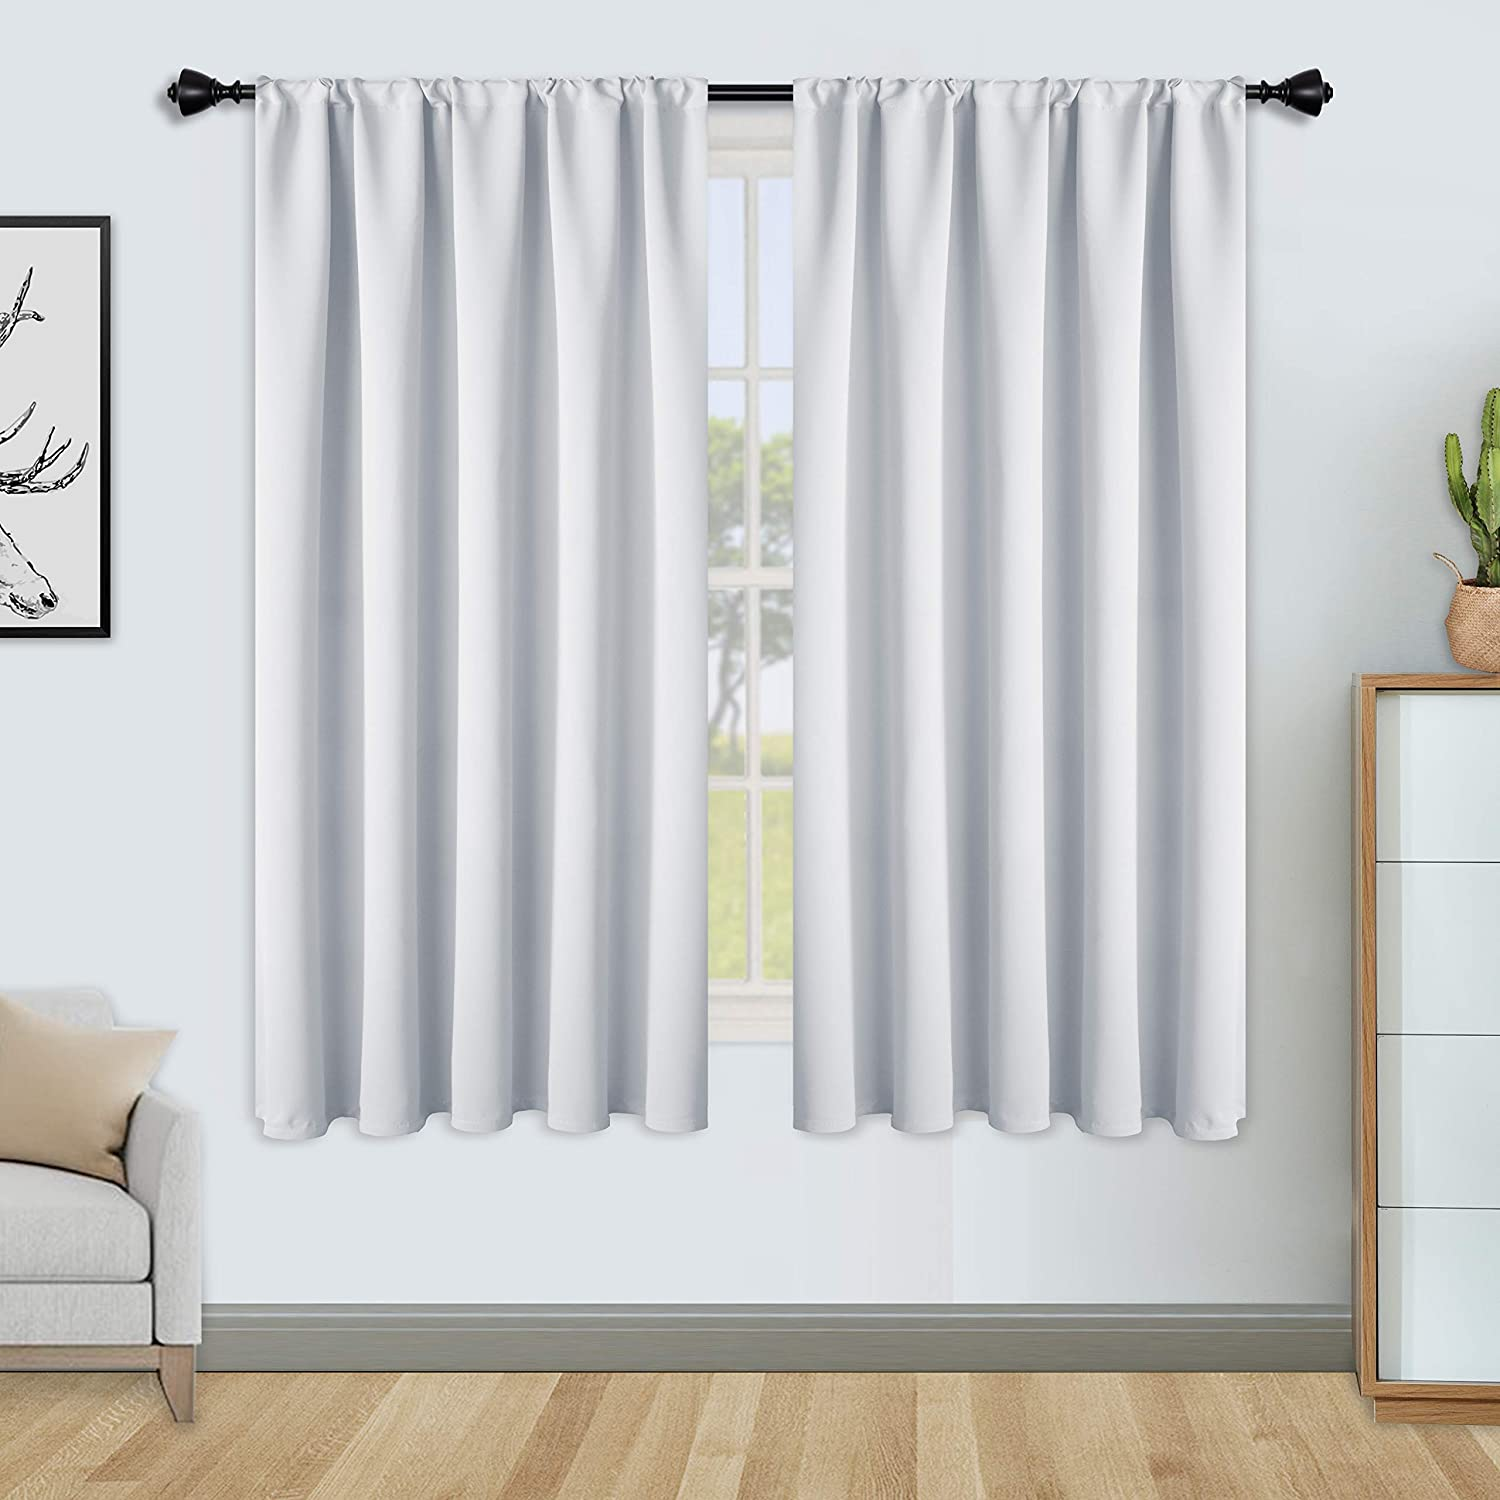 FLOWEROOM Blackout Curtains for Bedroom - Thermal Insulated, Energy Saving and Noise Reducing Rod Pocket Window Curtain Panels for Living Room, Greyish White, 42 x 63 inch, 2 Panels